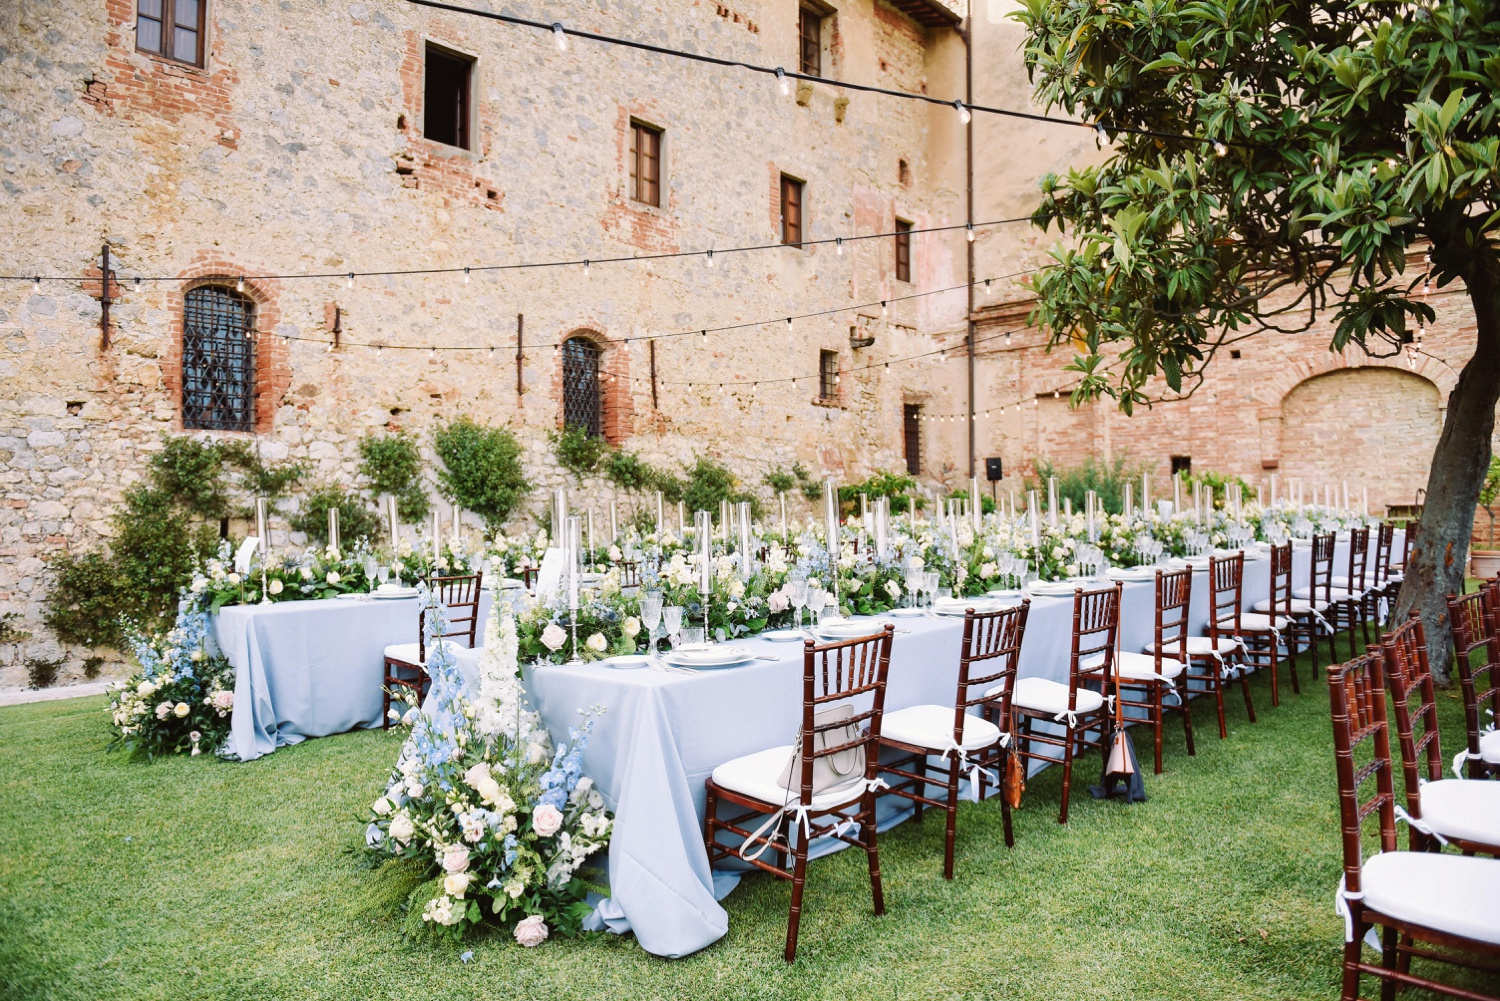 landvphotography_wedding_photographer_tuscany_0005.jpg